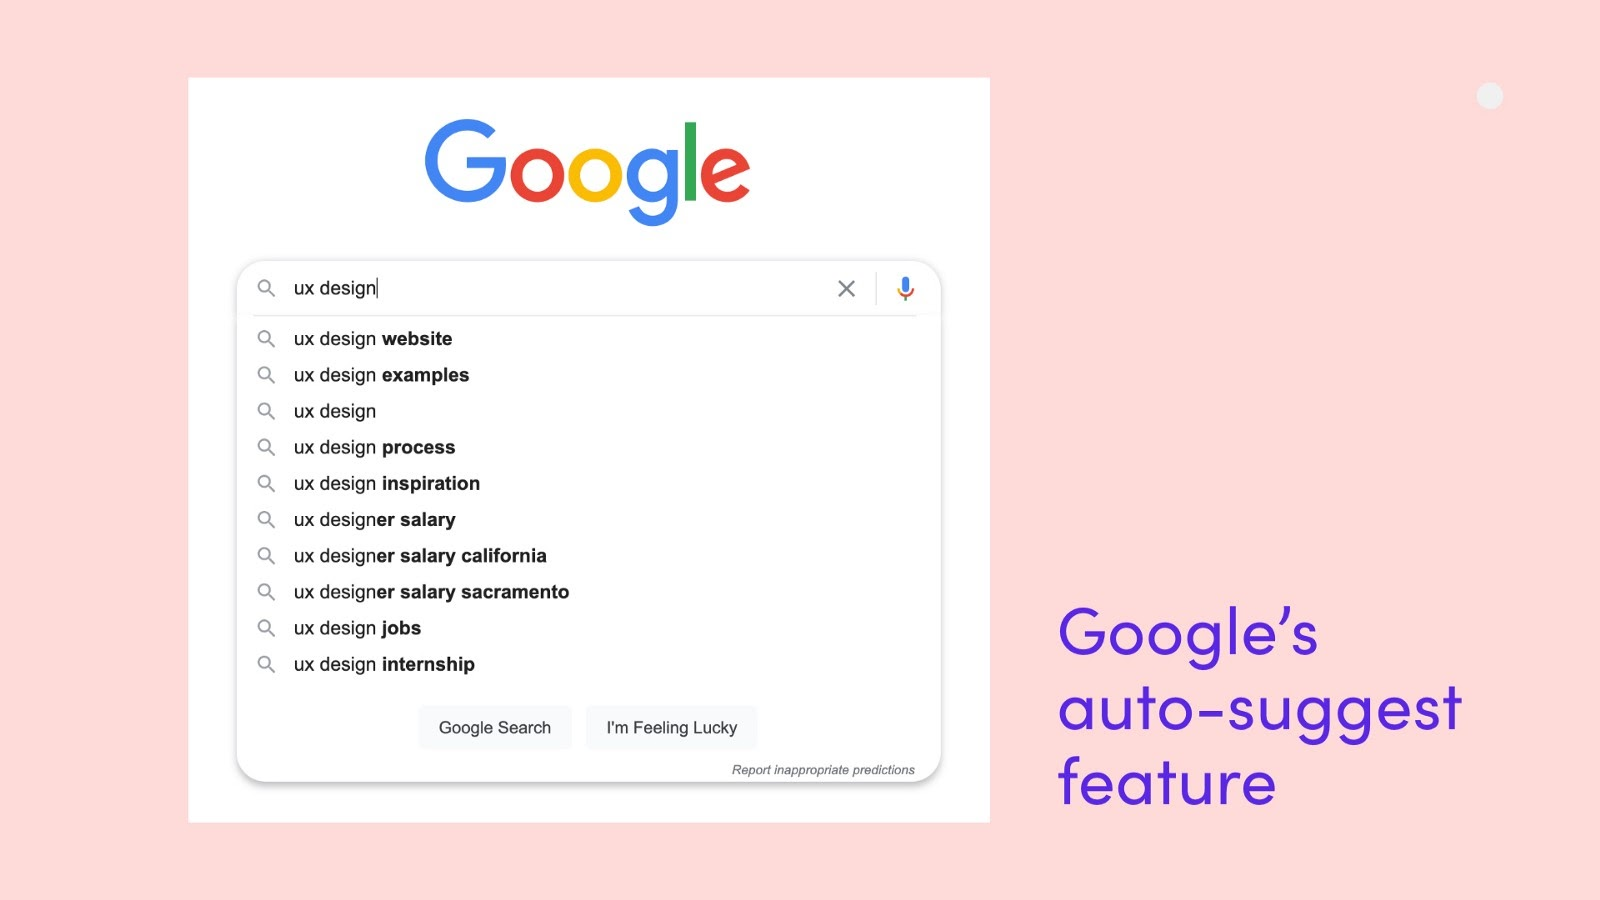 Google's auto-suggest feed solves a problem for the user